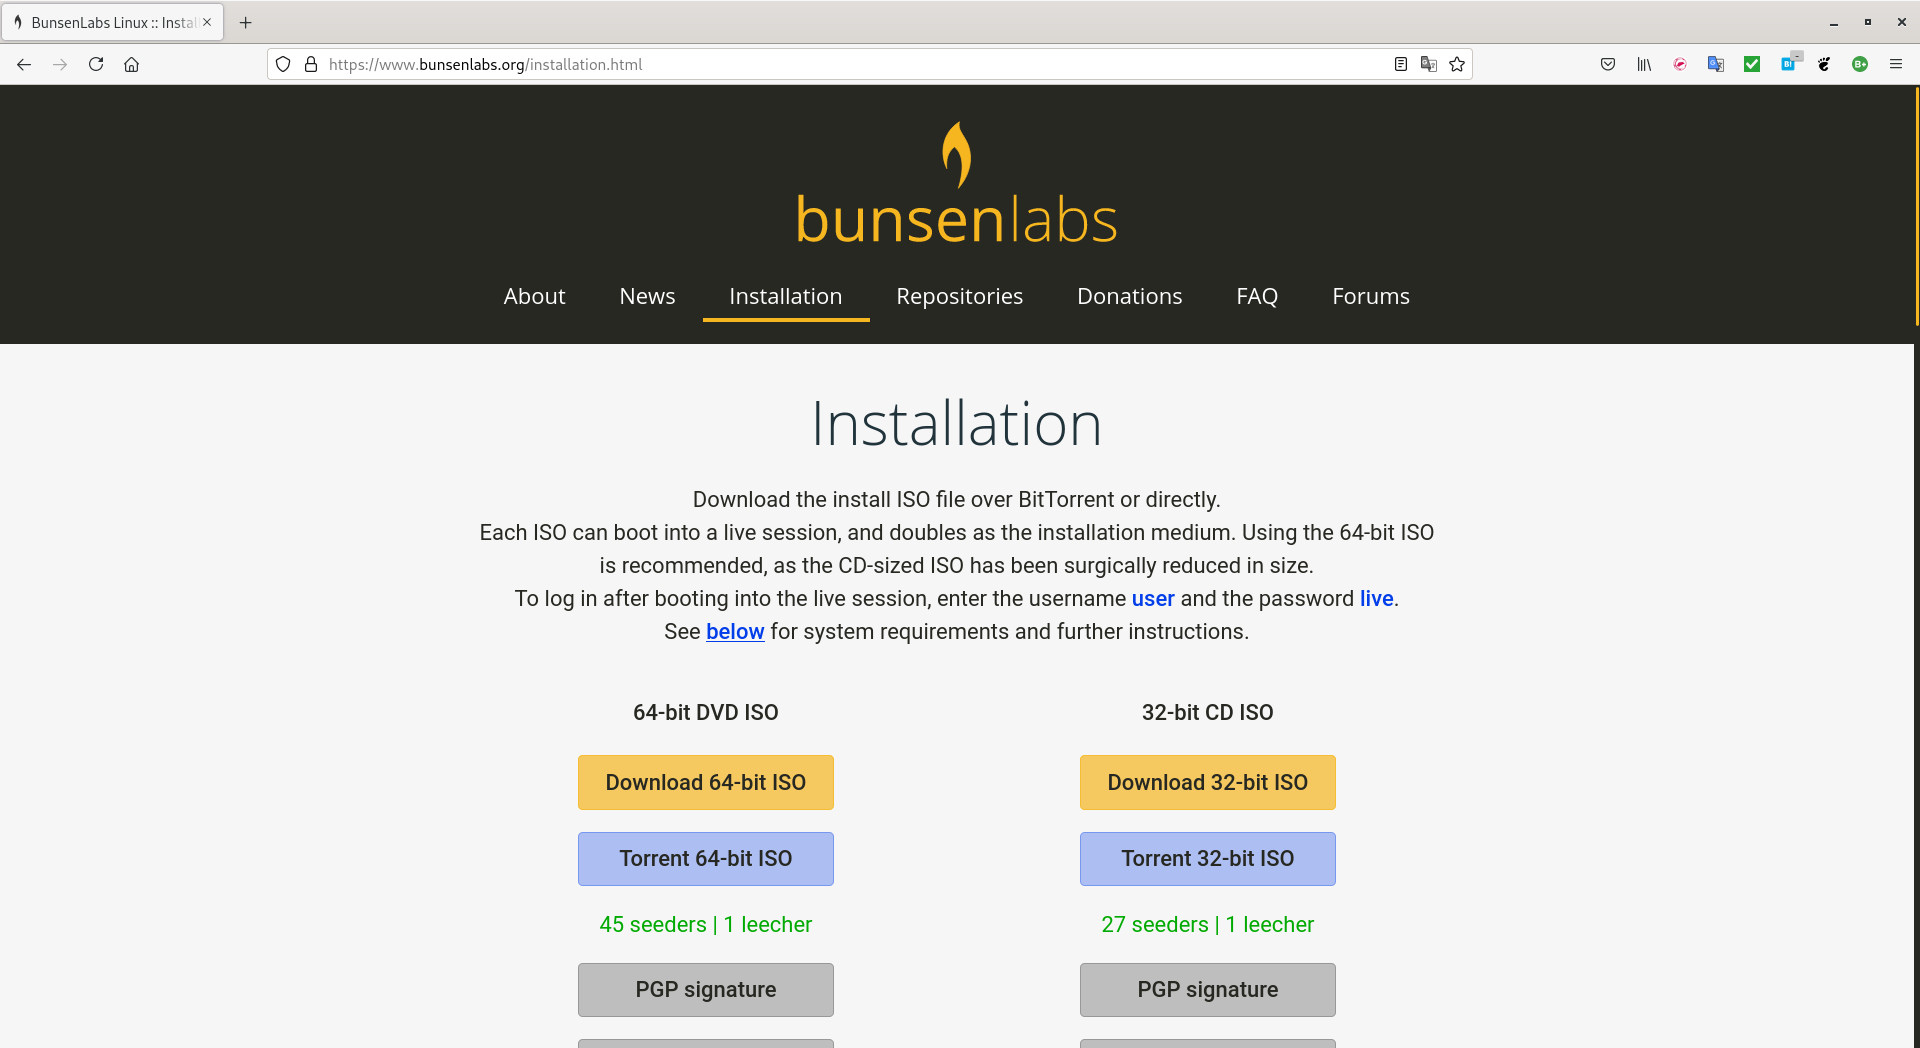 BunsenLabs Linuxサイト